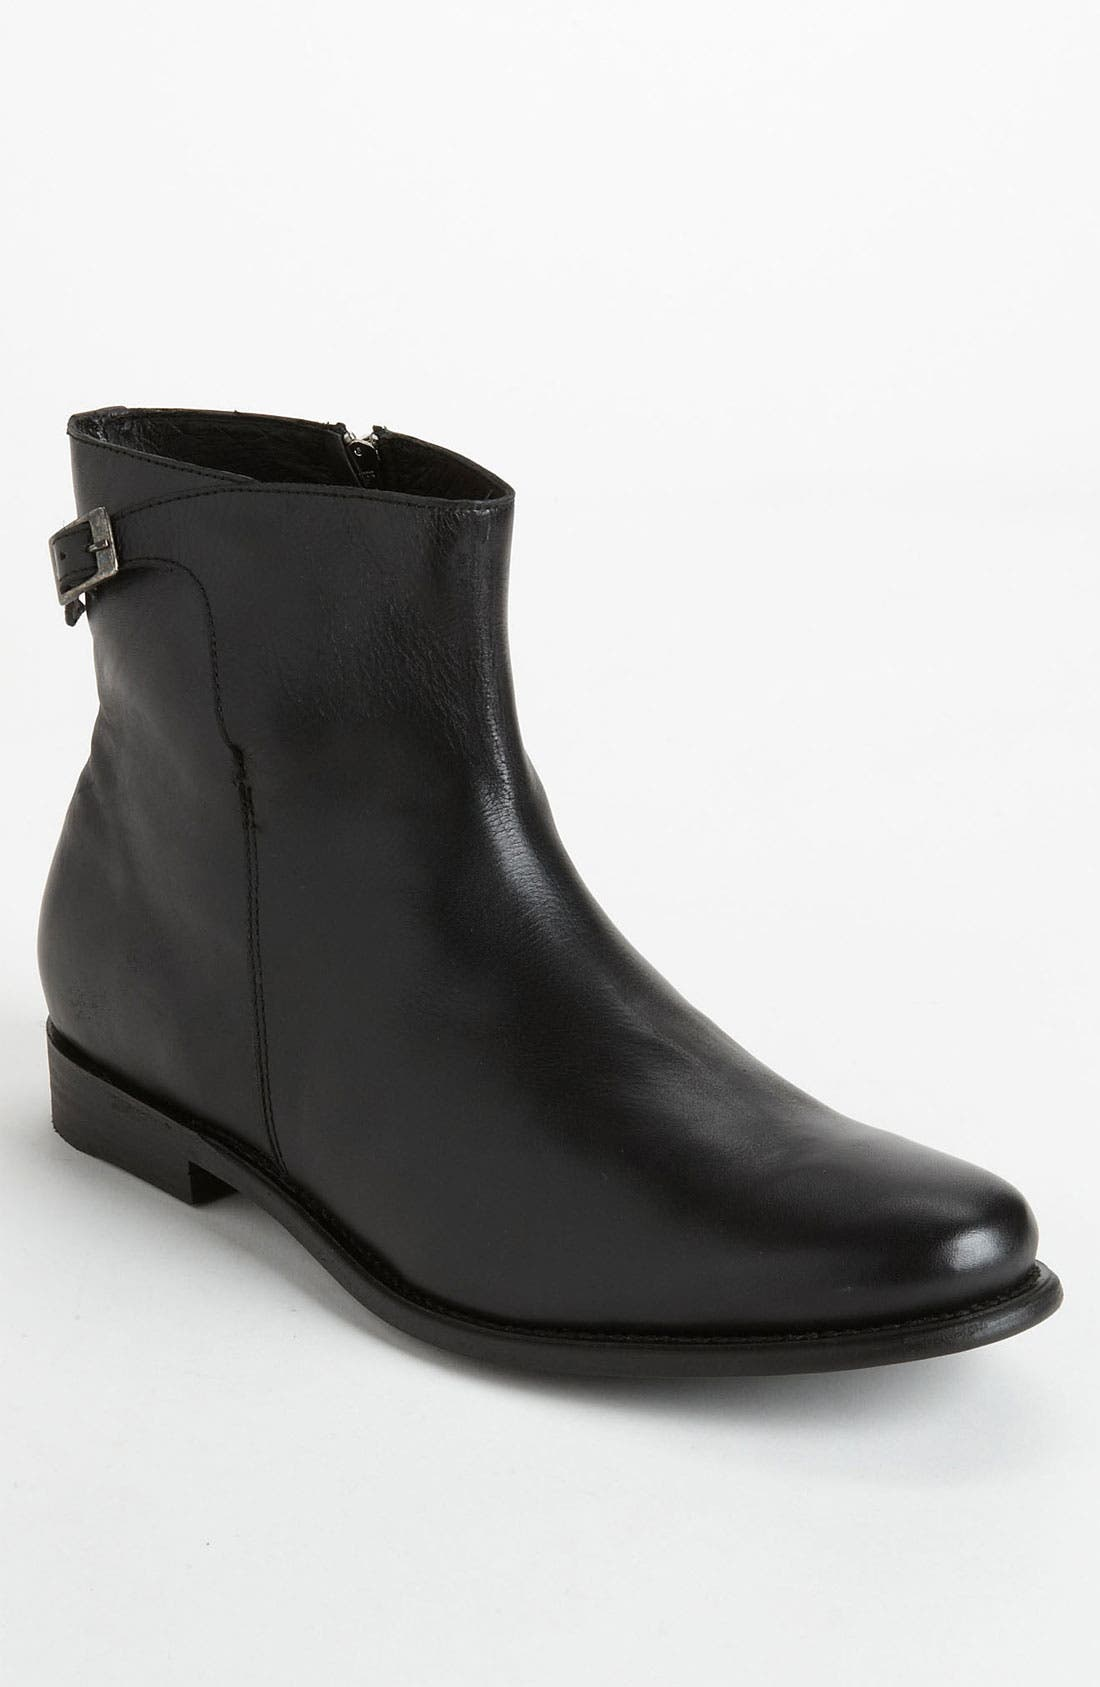 Alternate Image 1 Selected - J.D. Fisk 'Franky' Plain Toe Boot (Online Only)